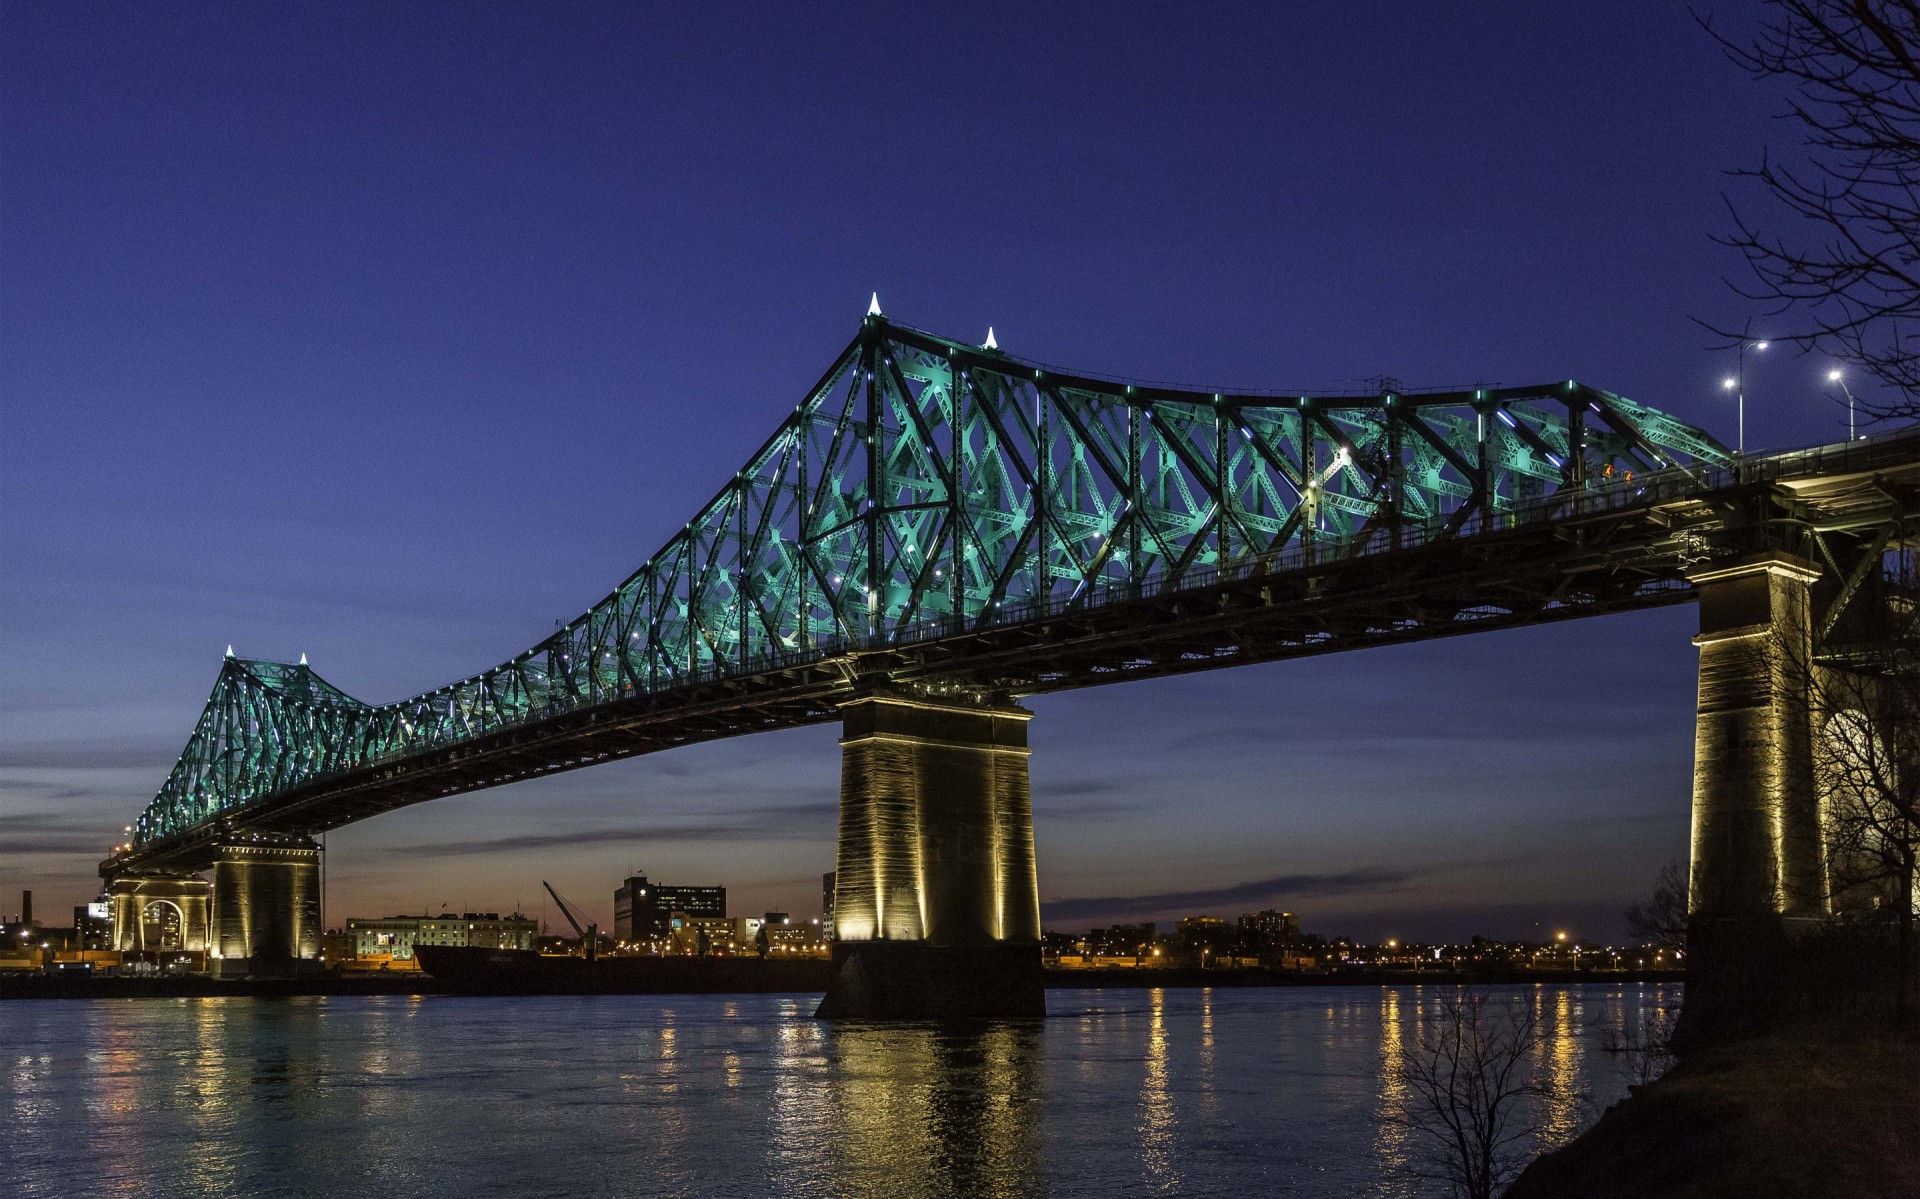 El puente Jacques-Cartier se engalanó con un nuevo diseño de iluminación, llamado LIVING CONNECTIONS. – The Jacques Cartier and Champlain Bridges Incorporated